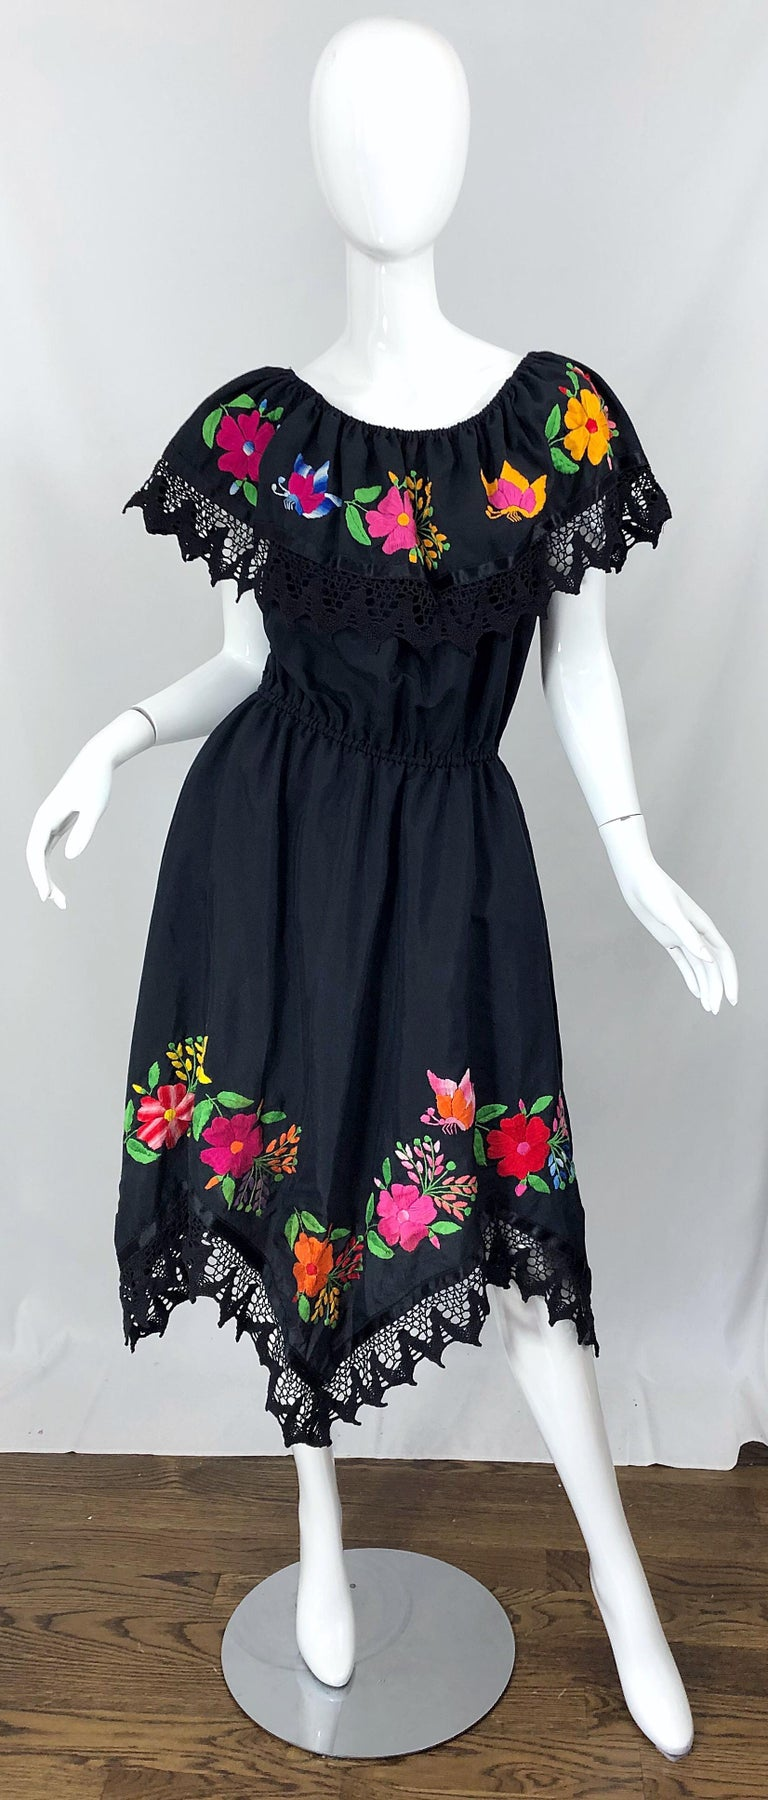 1970s Boho Chic Black Colorful Cotton Embroidered Handkerchief Hem Vintage Dress For Sale 8